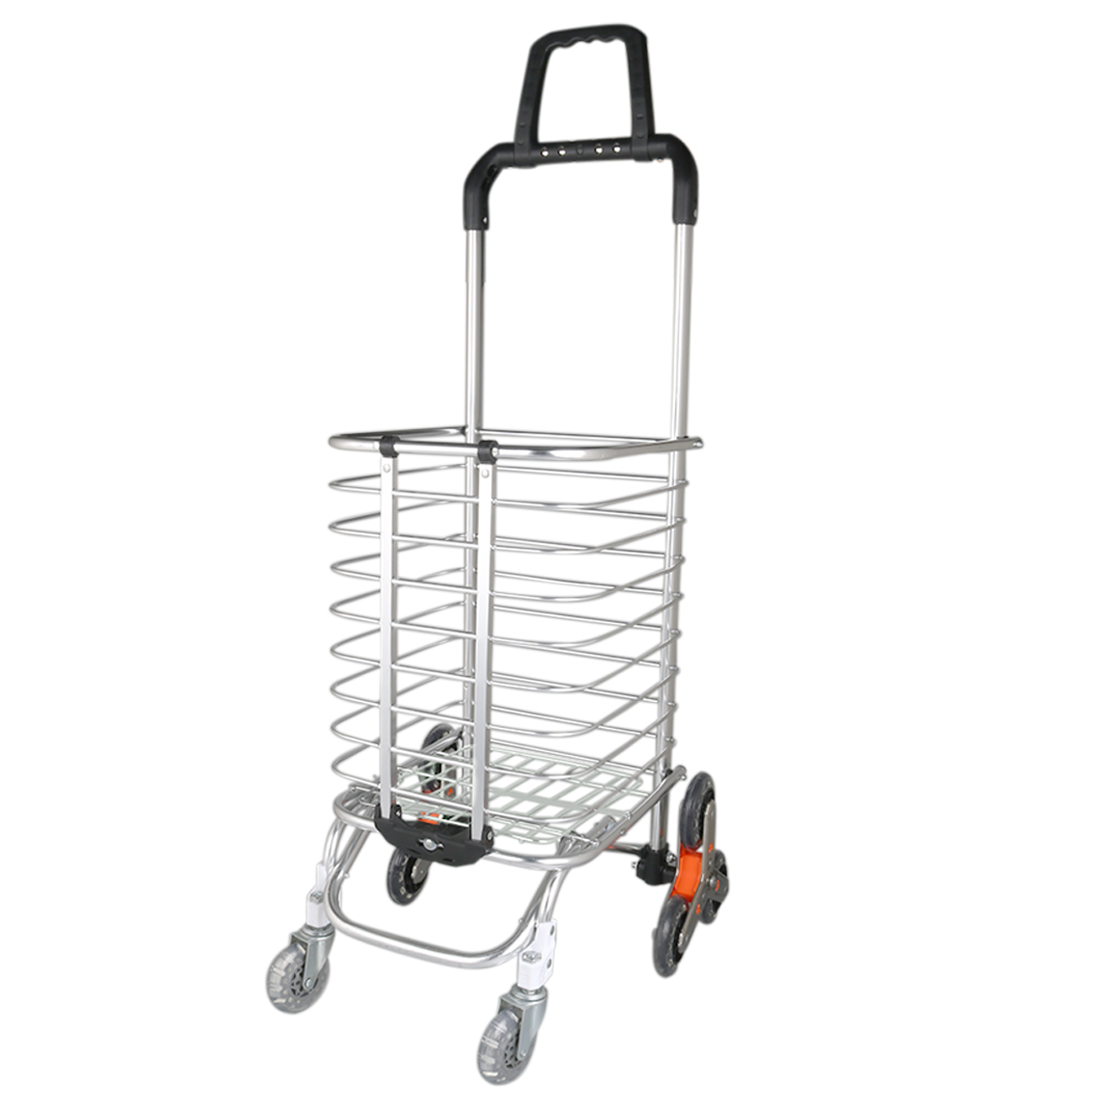 Heavy Duty Stair Climber Grocery Shopping Cart Trolley Basket